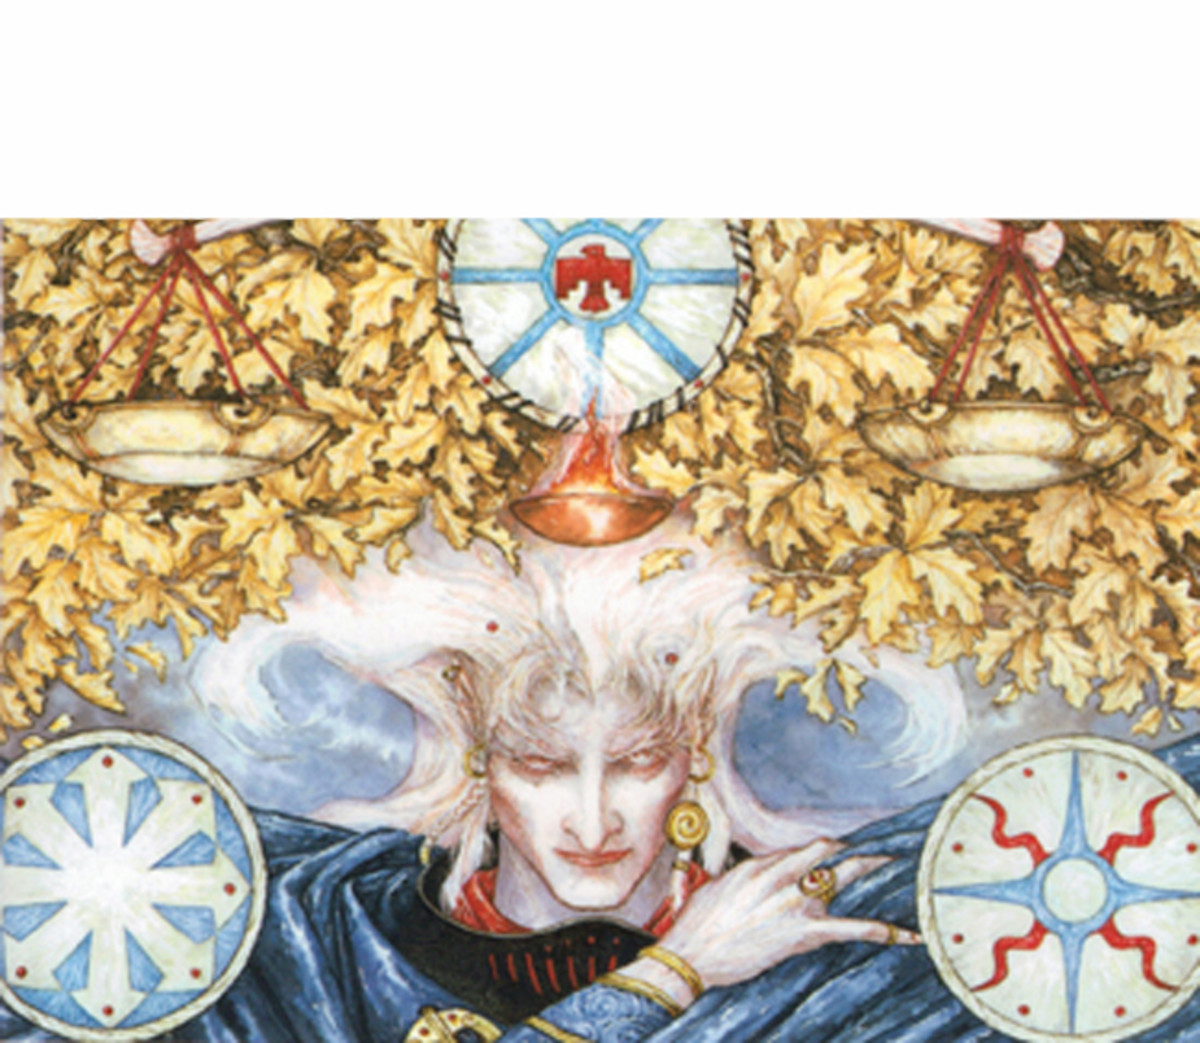 Sample from the cover of Skrayling Tree, art by Robert Gould.